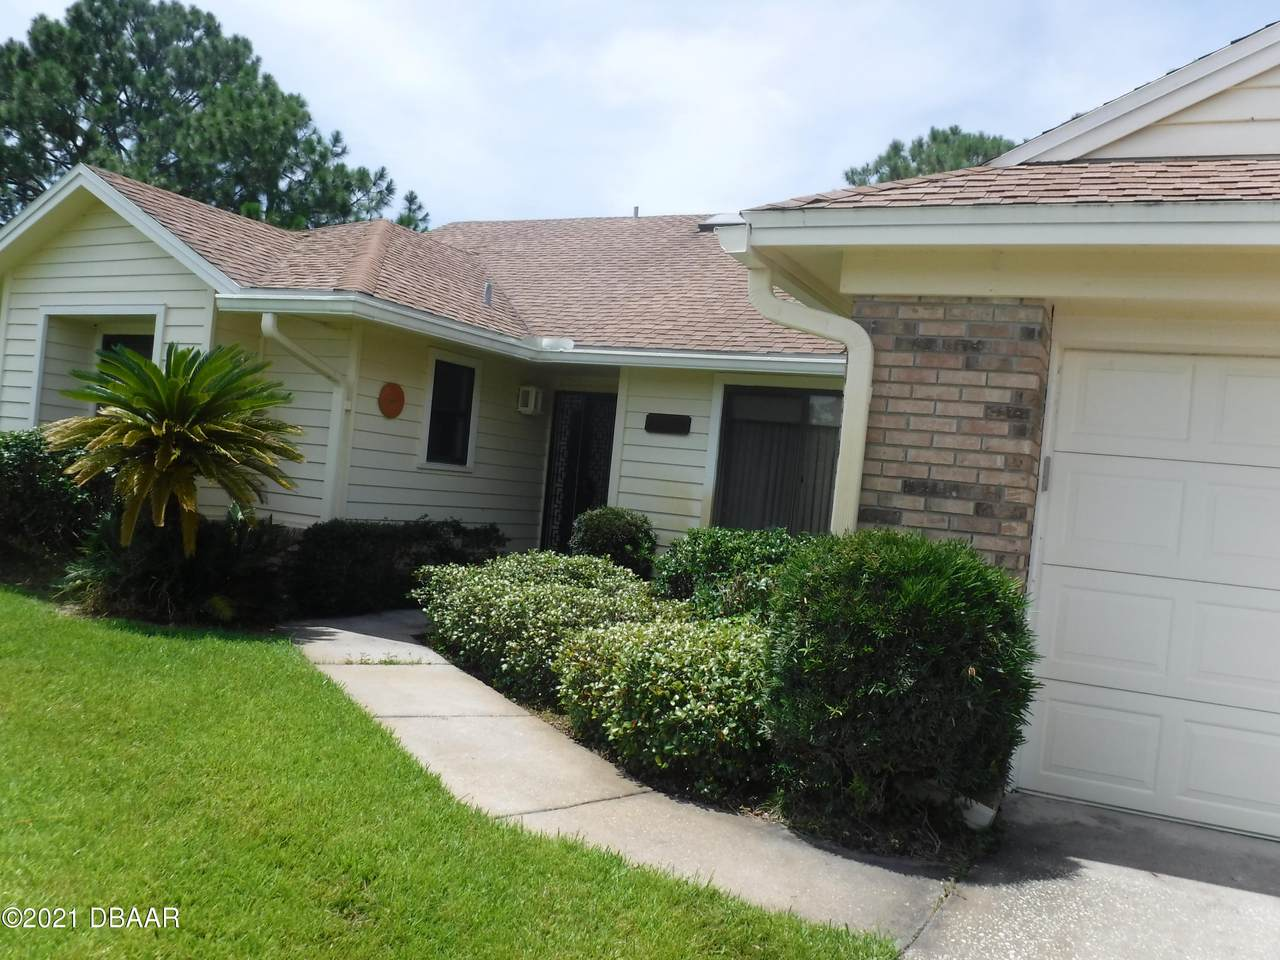 121 Greenwing Teal Court - Photo 1